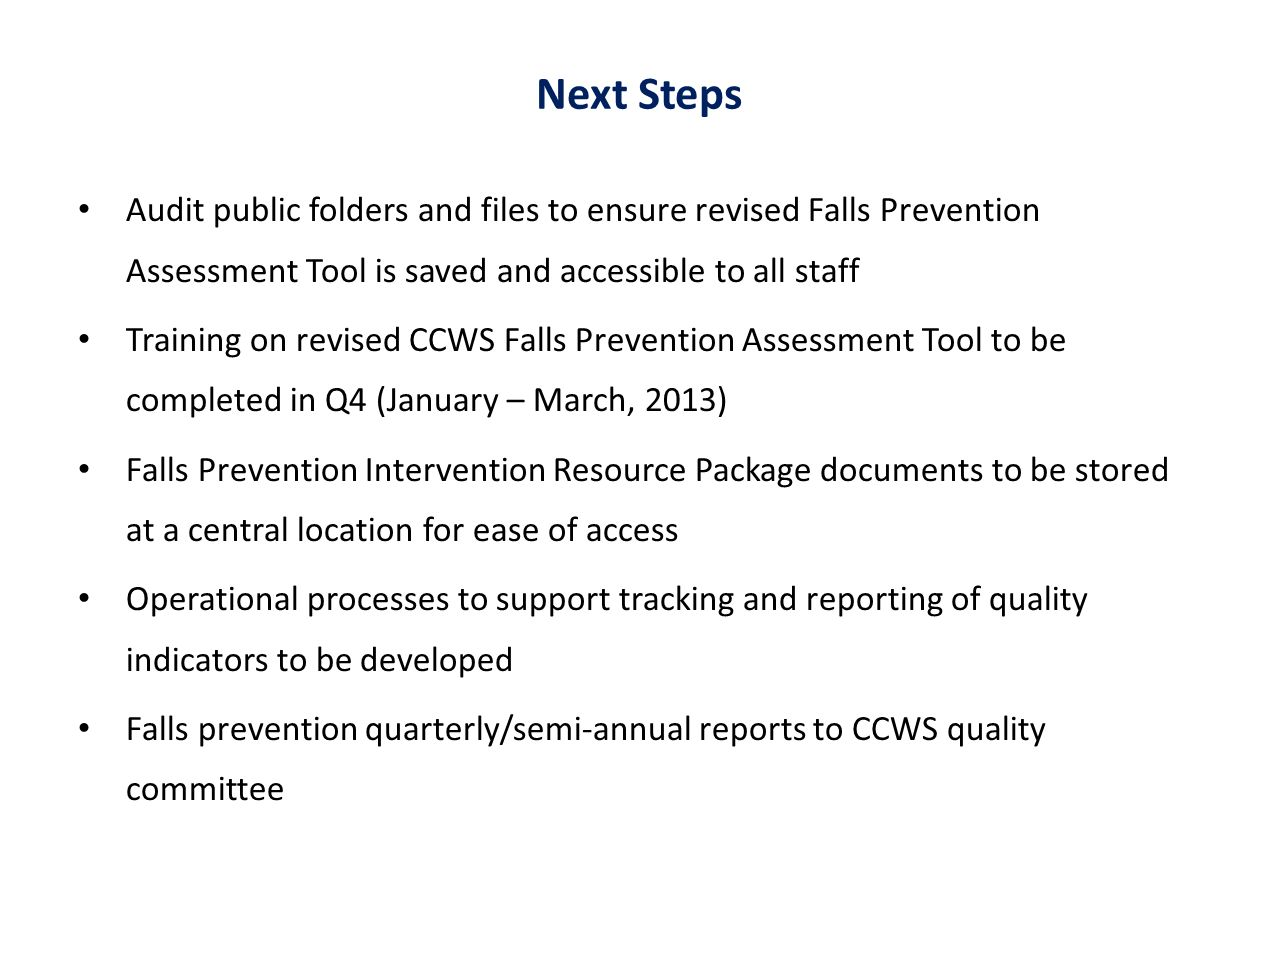 Next Steps Audit public folders and files to ensure revised Falls Prevention Assessment Tool is saved and accessible to all staff.